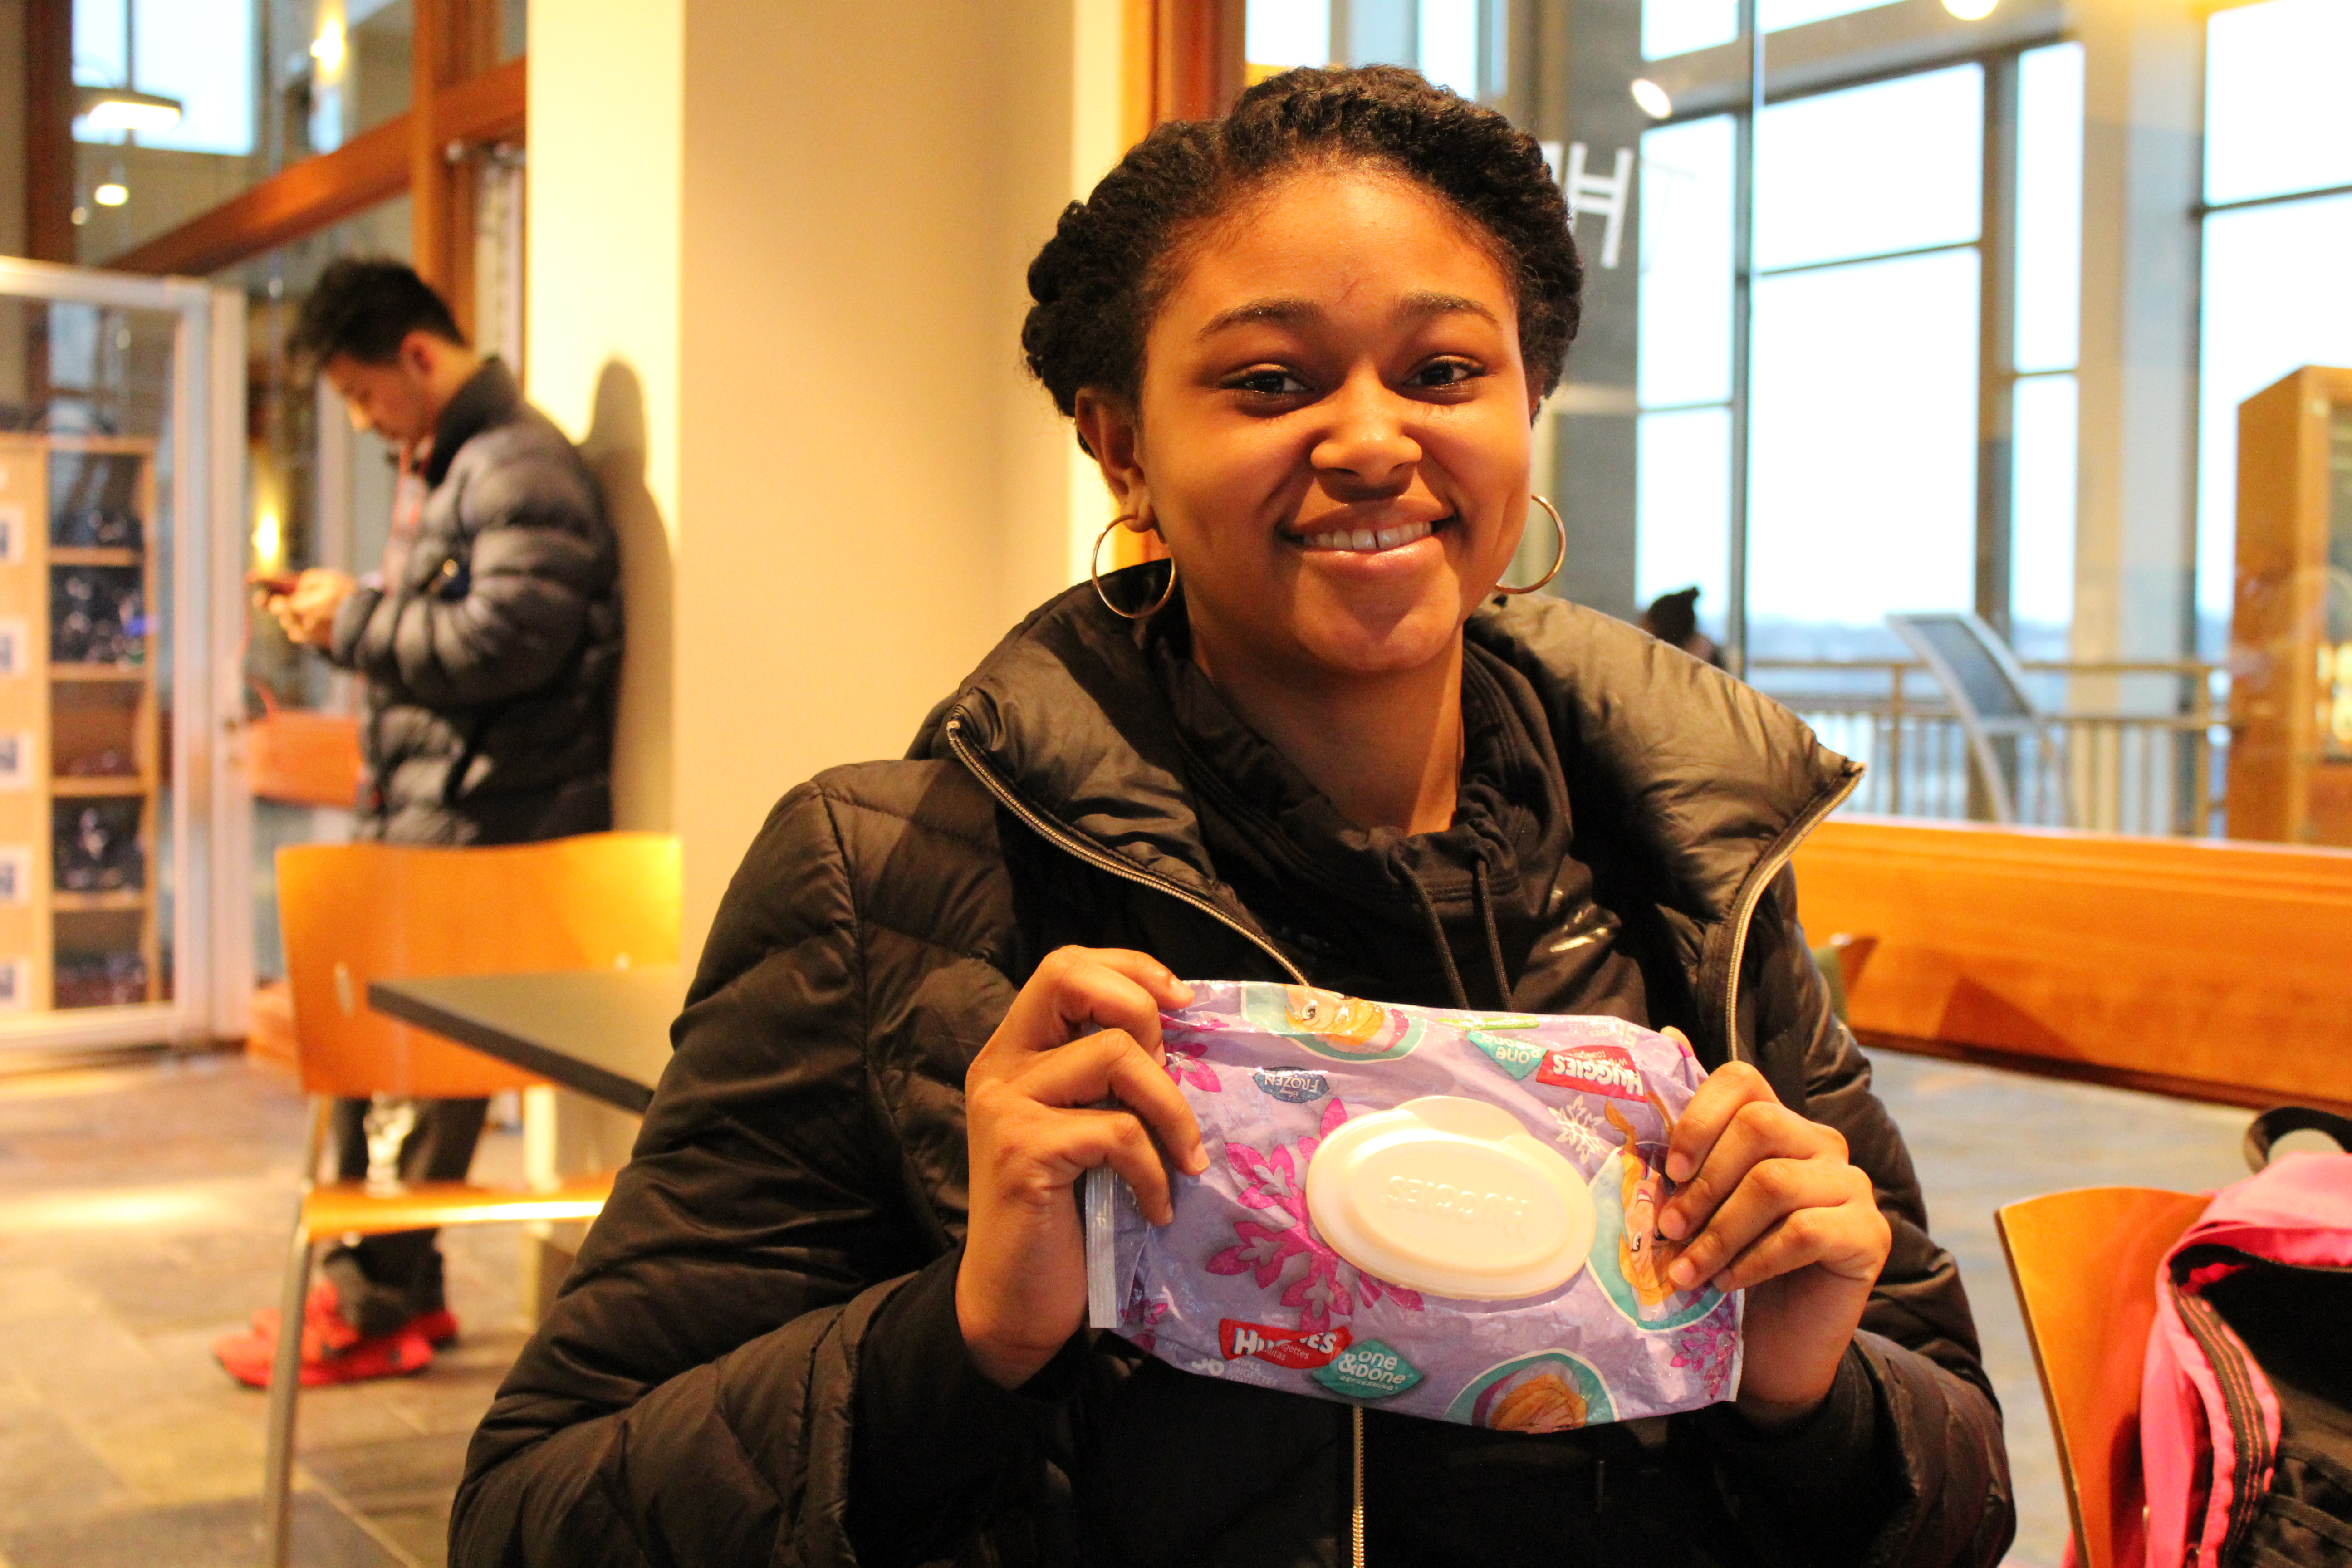 """It's easier than getting a papertowel,"" said freshman Briana Faulkes, holding Huggies baby wipes."